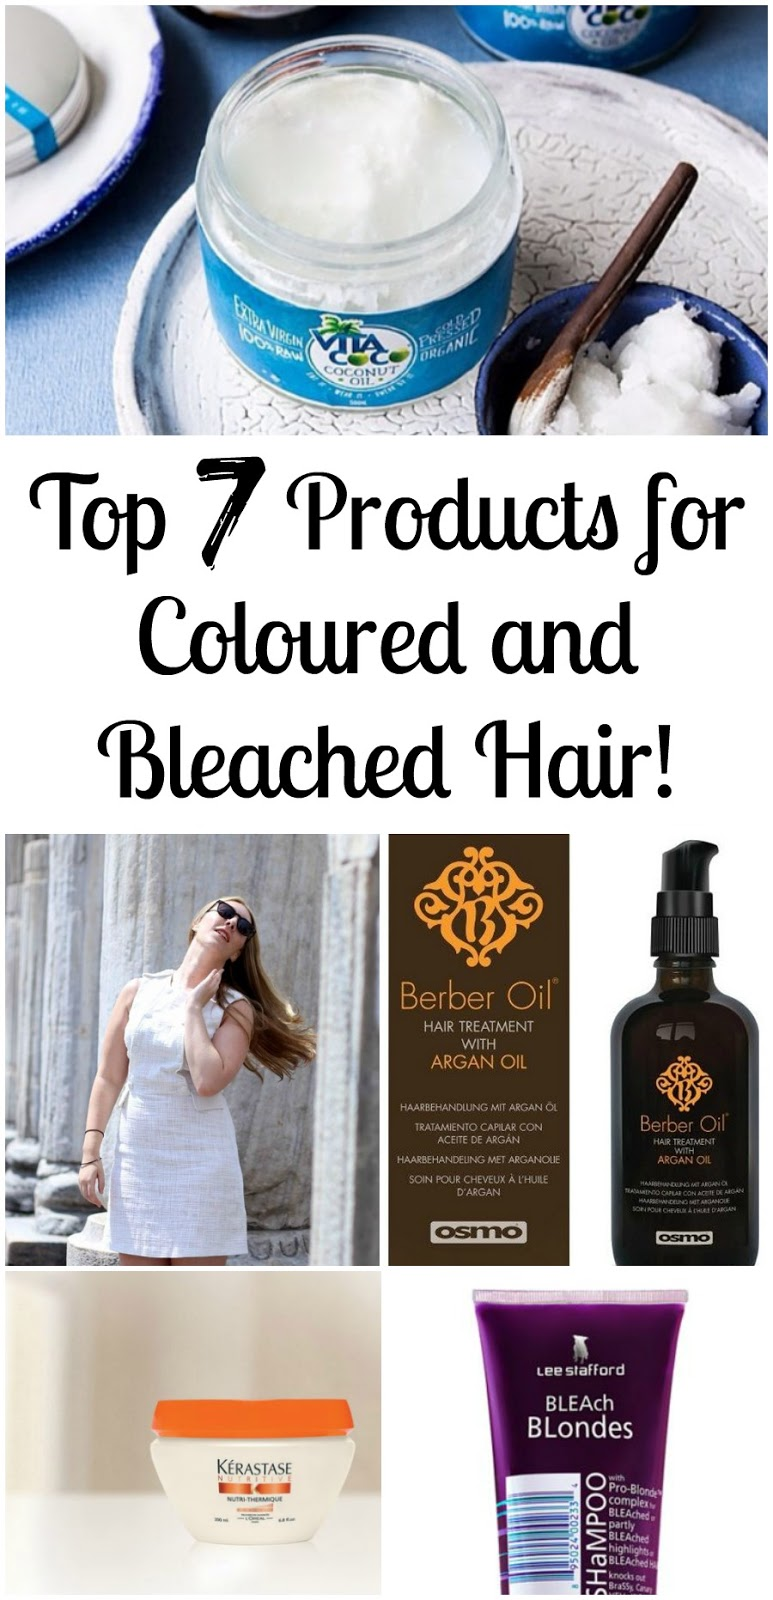 *PIN FOR LATER* The Top 7 Products for coloured and bleached hair - FIVE of these products are natural and organic hair care products!! Only two of them contain harsh chemicals, and one of those is a silver shampoo.